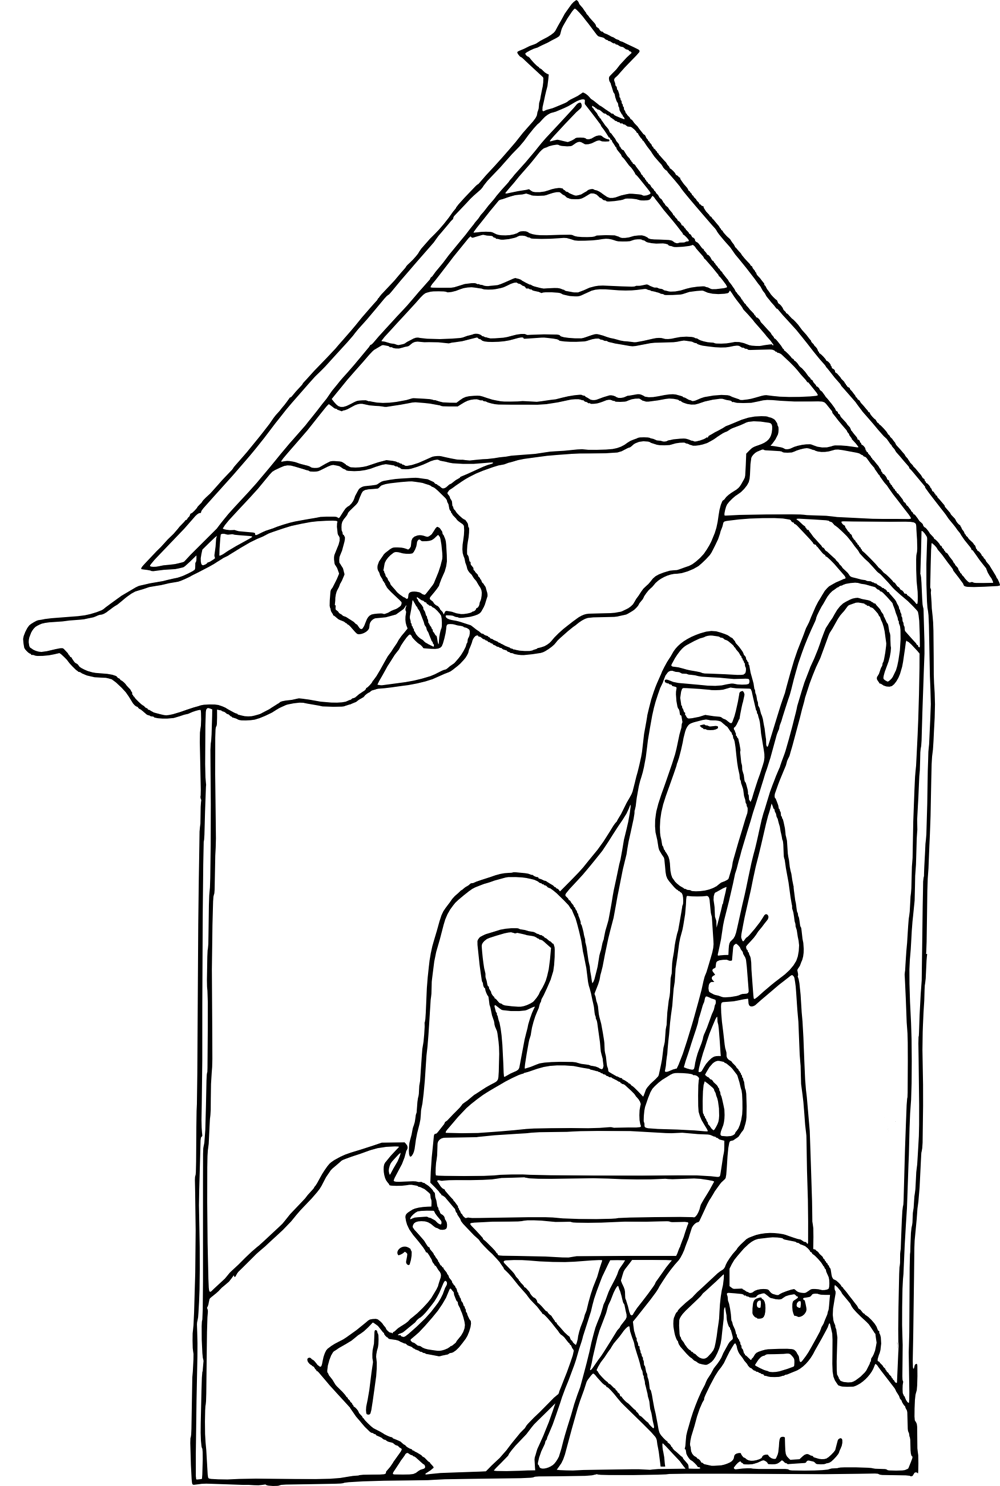 coloring pages jesus baby jesus coloring pages best coloring pages for kids pages coloring jesus